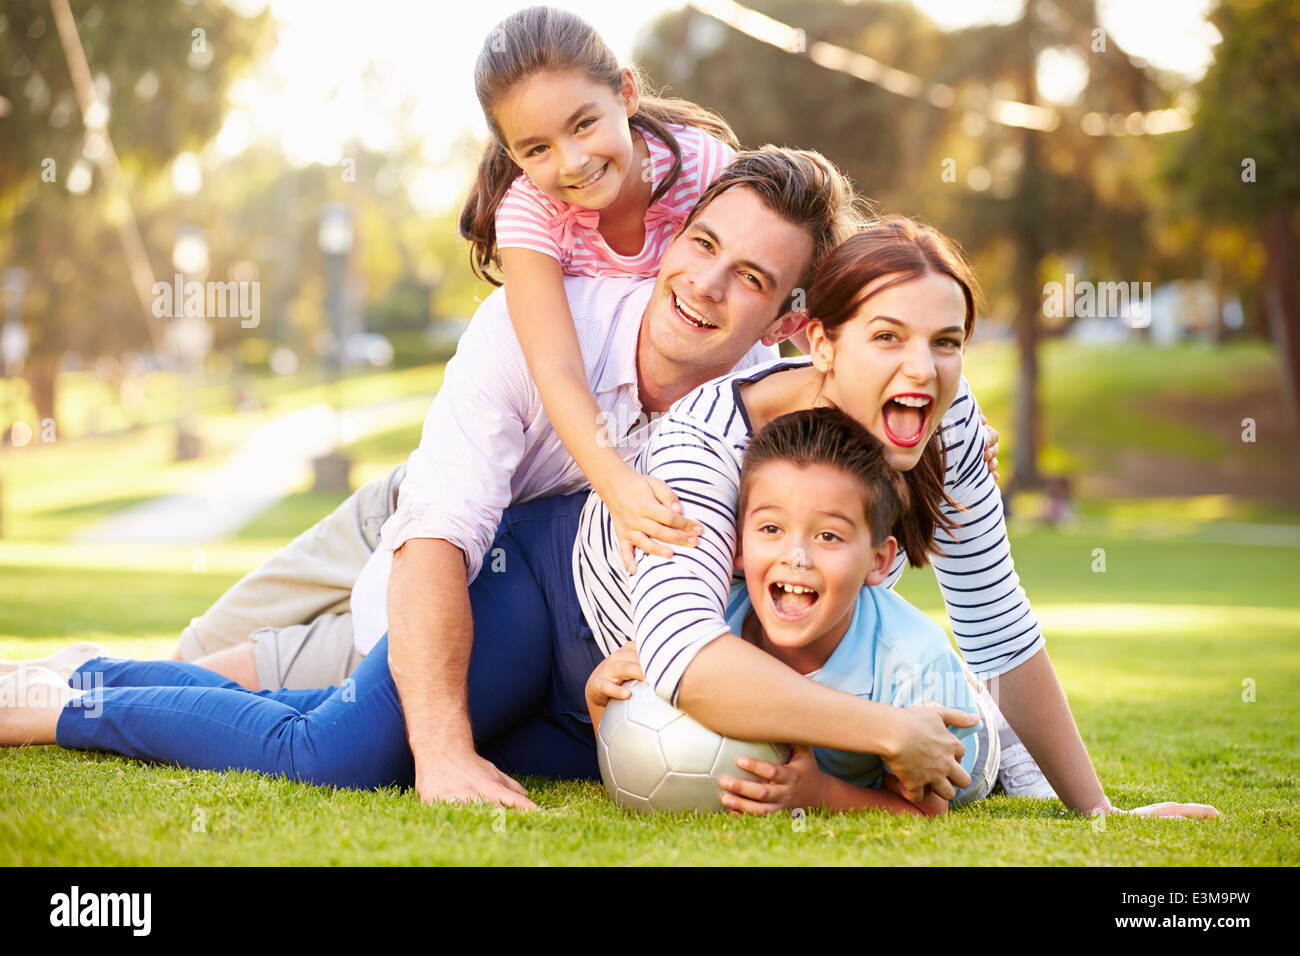 Family Lying On Grass In Park Together - Stock Image